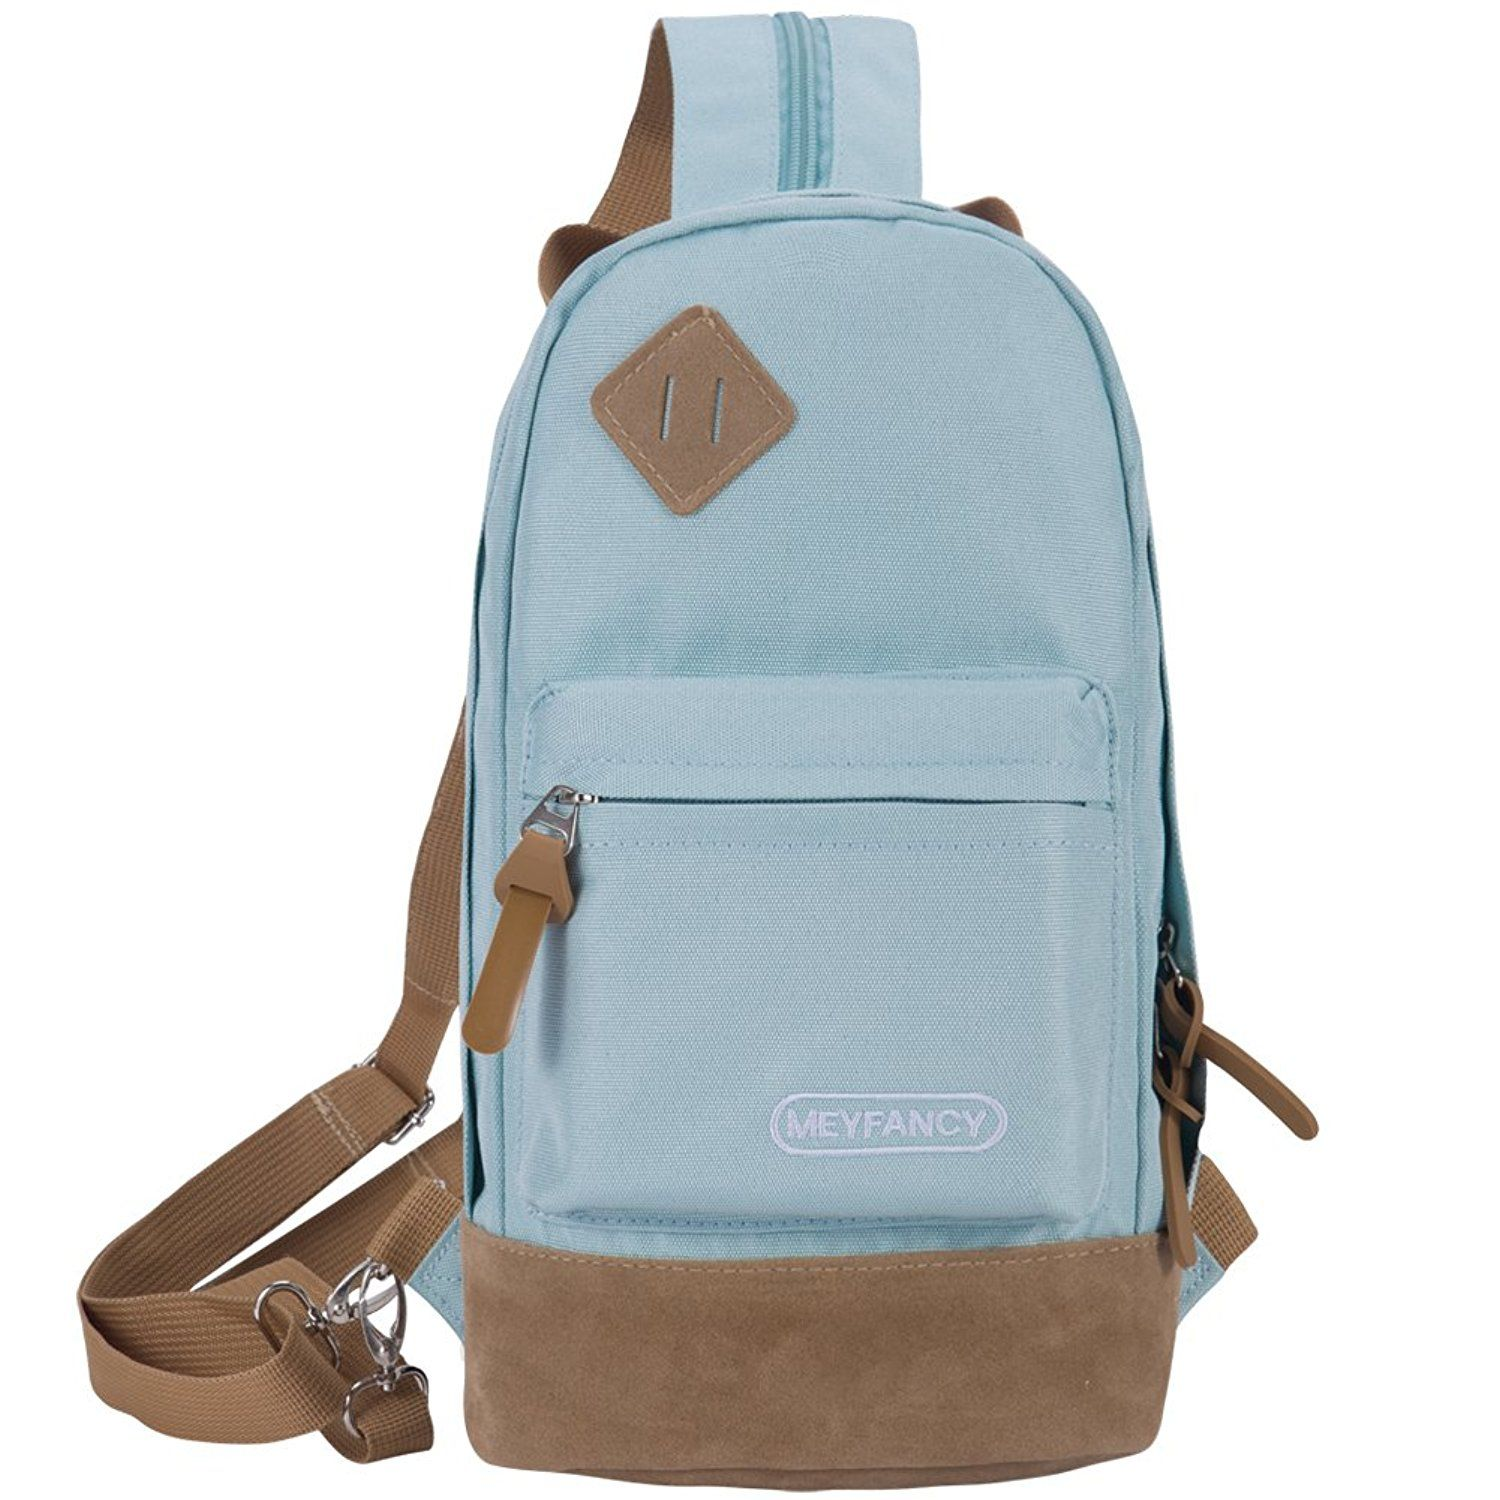 Meyfancy Lightweight Small Backpack Cute little Bag Daypack for Women or  Men -- Want additional d1dcc677e1160